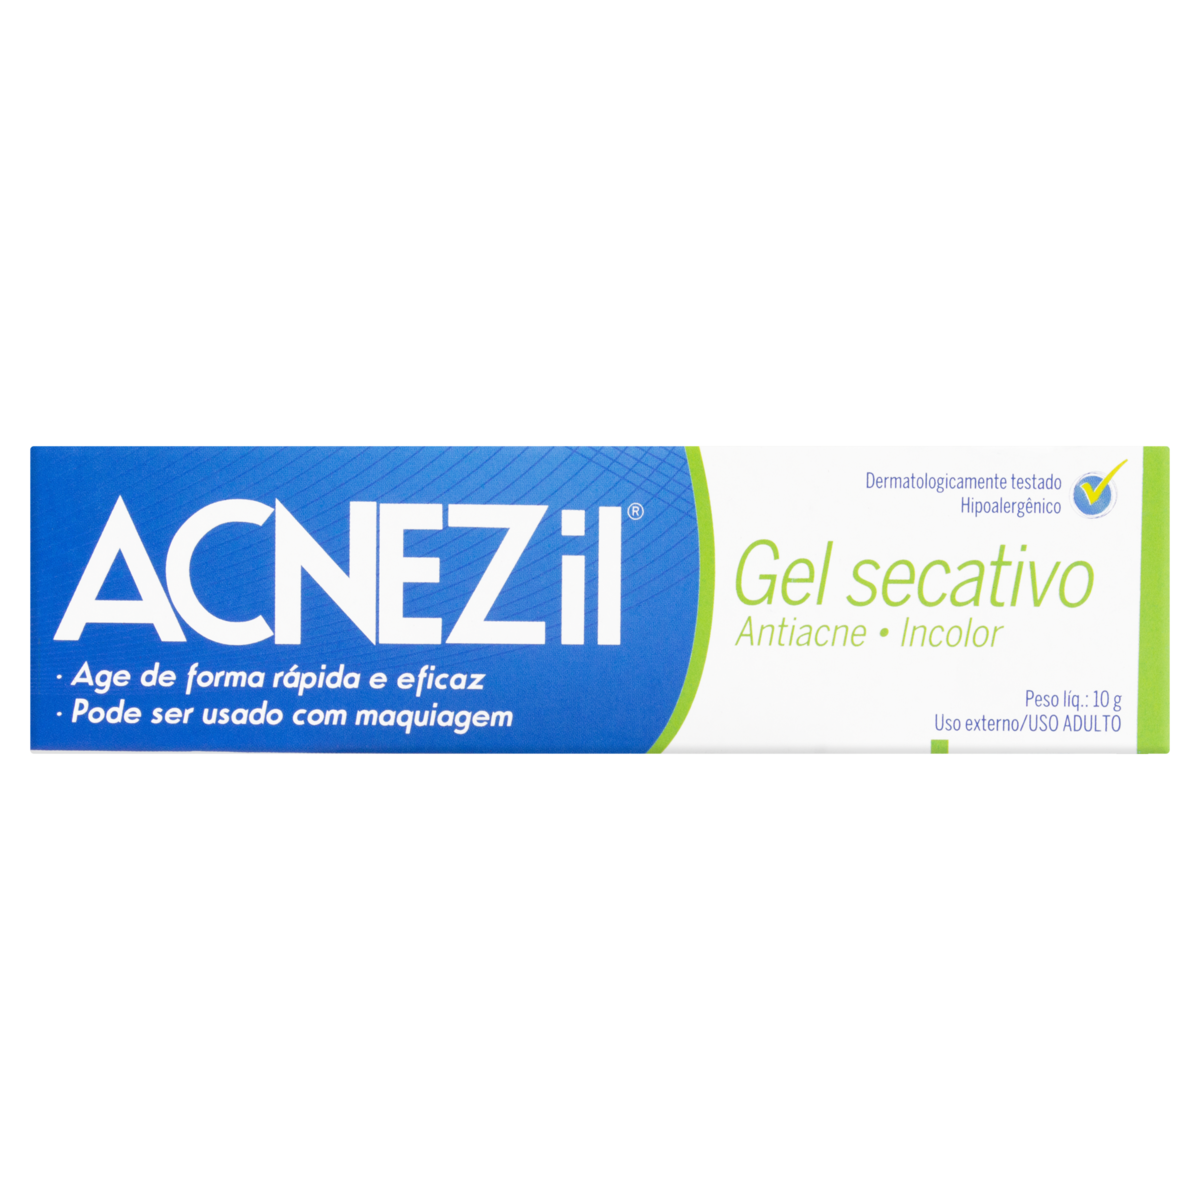 7897947607392 - ACNEZIL GEL SECATIVO 10G